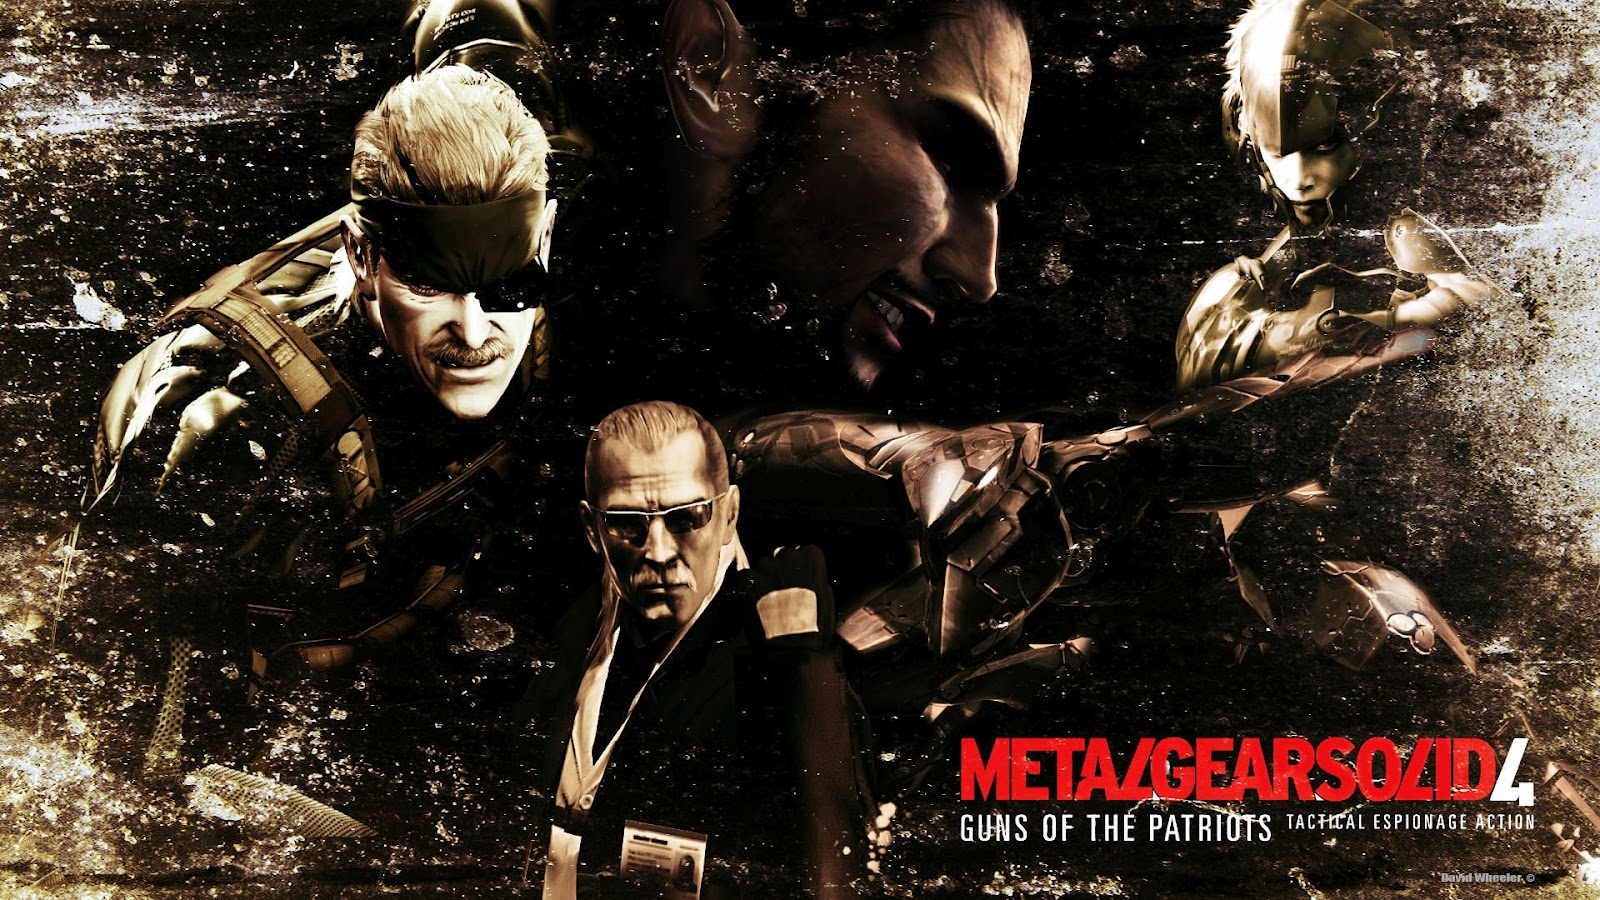 Metal%2520Gear%2520Solid%25204%2520Guns%2520of%2520the%2520Patriots%2520Wallpapers%25201 Metal Gear Solid 4: Guns of the Patriots Wallpapers in HD